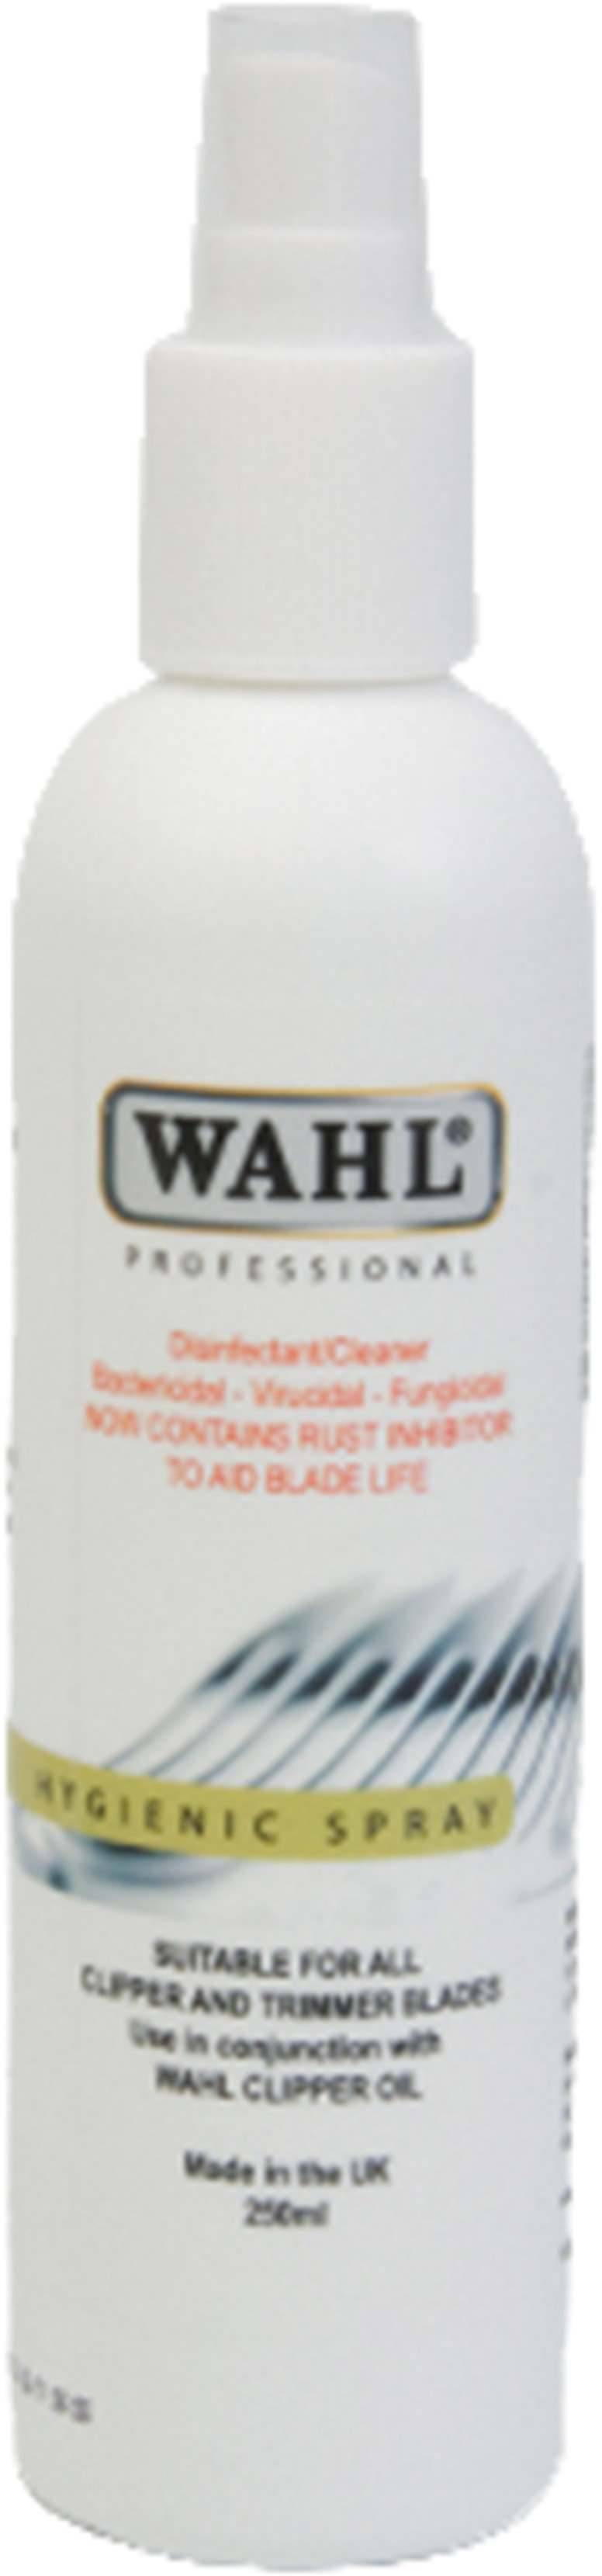 Wahl ZX495 Hygenic Spray Clipper Disinfectant/Cleaning Spray